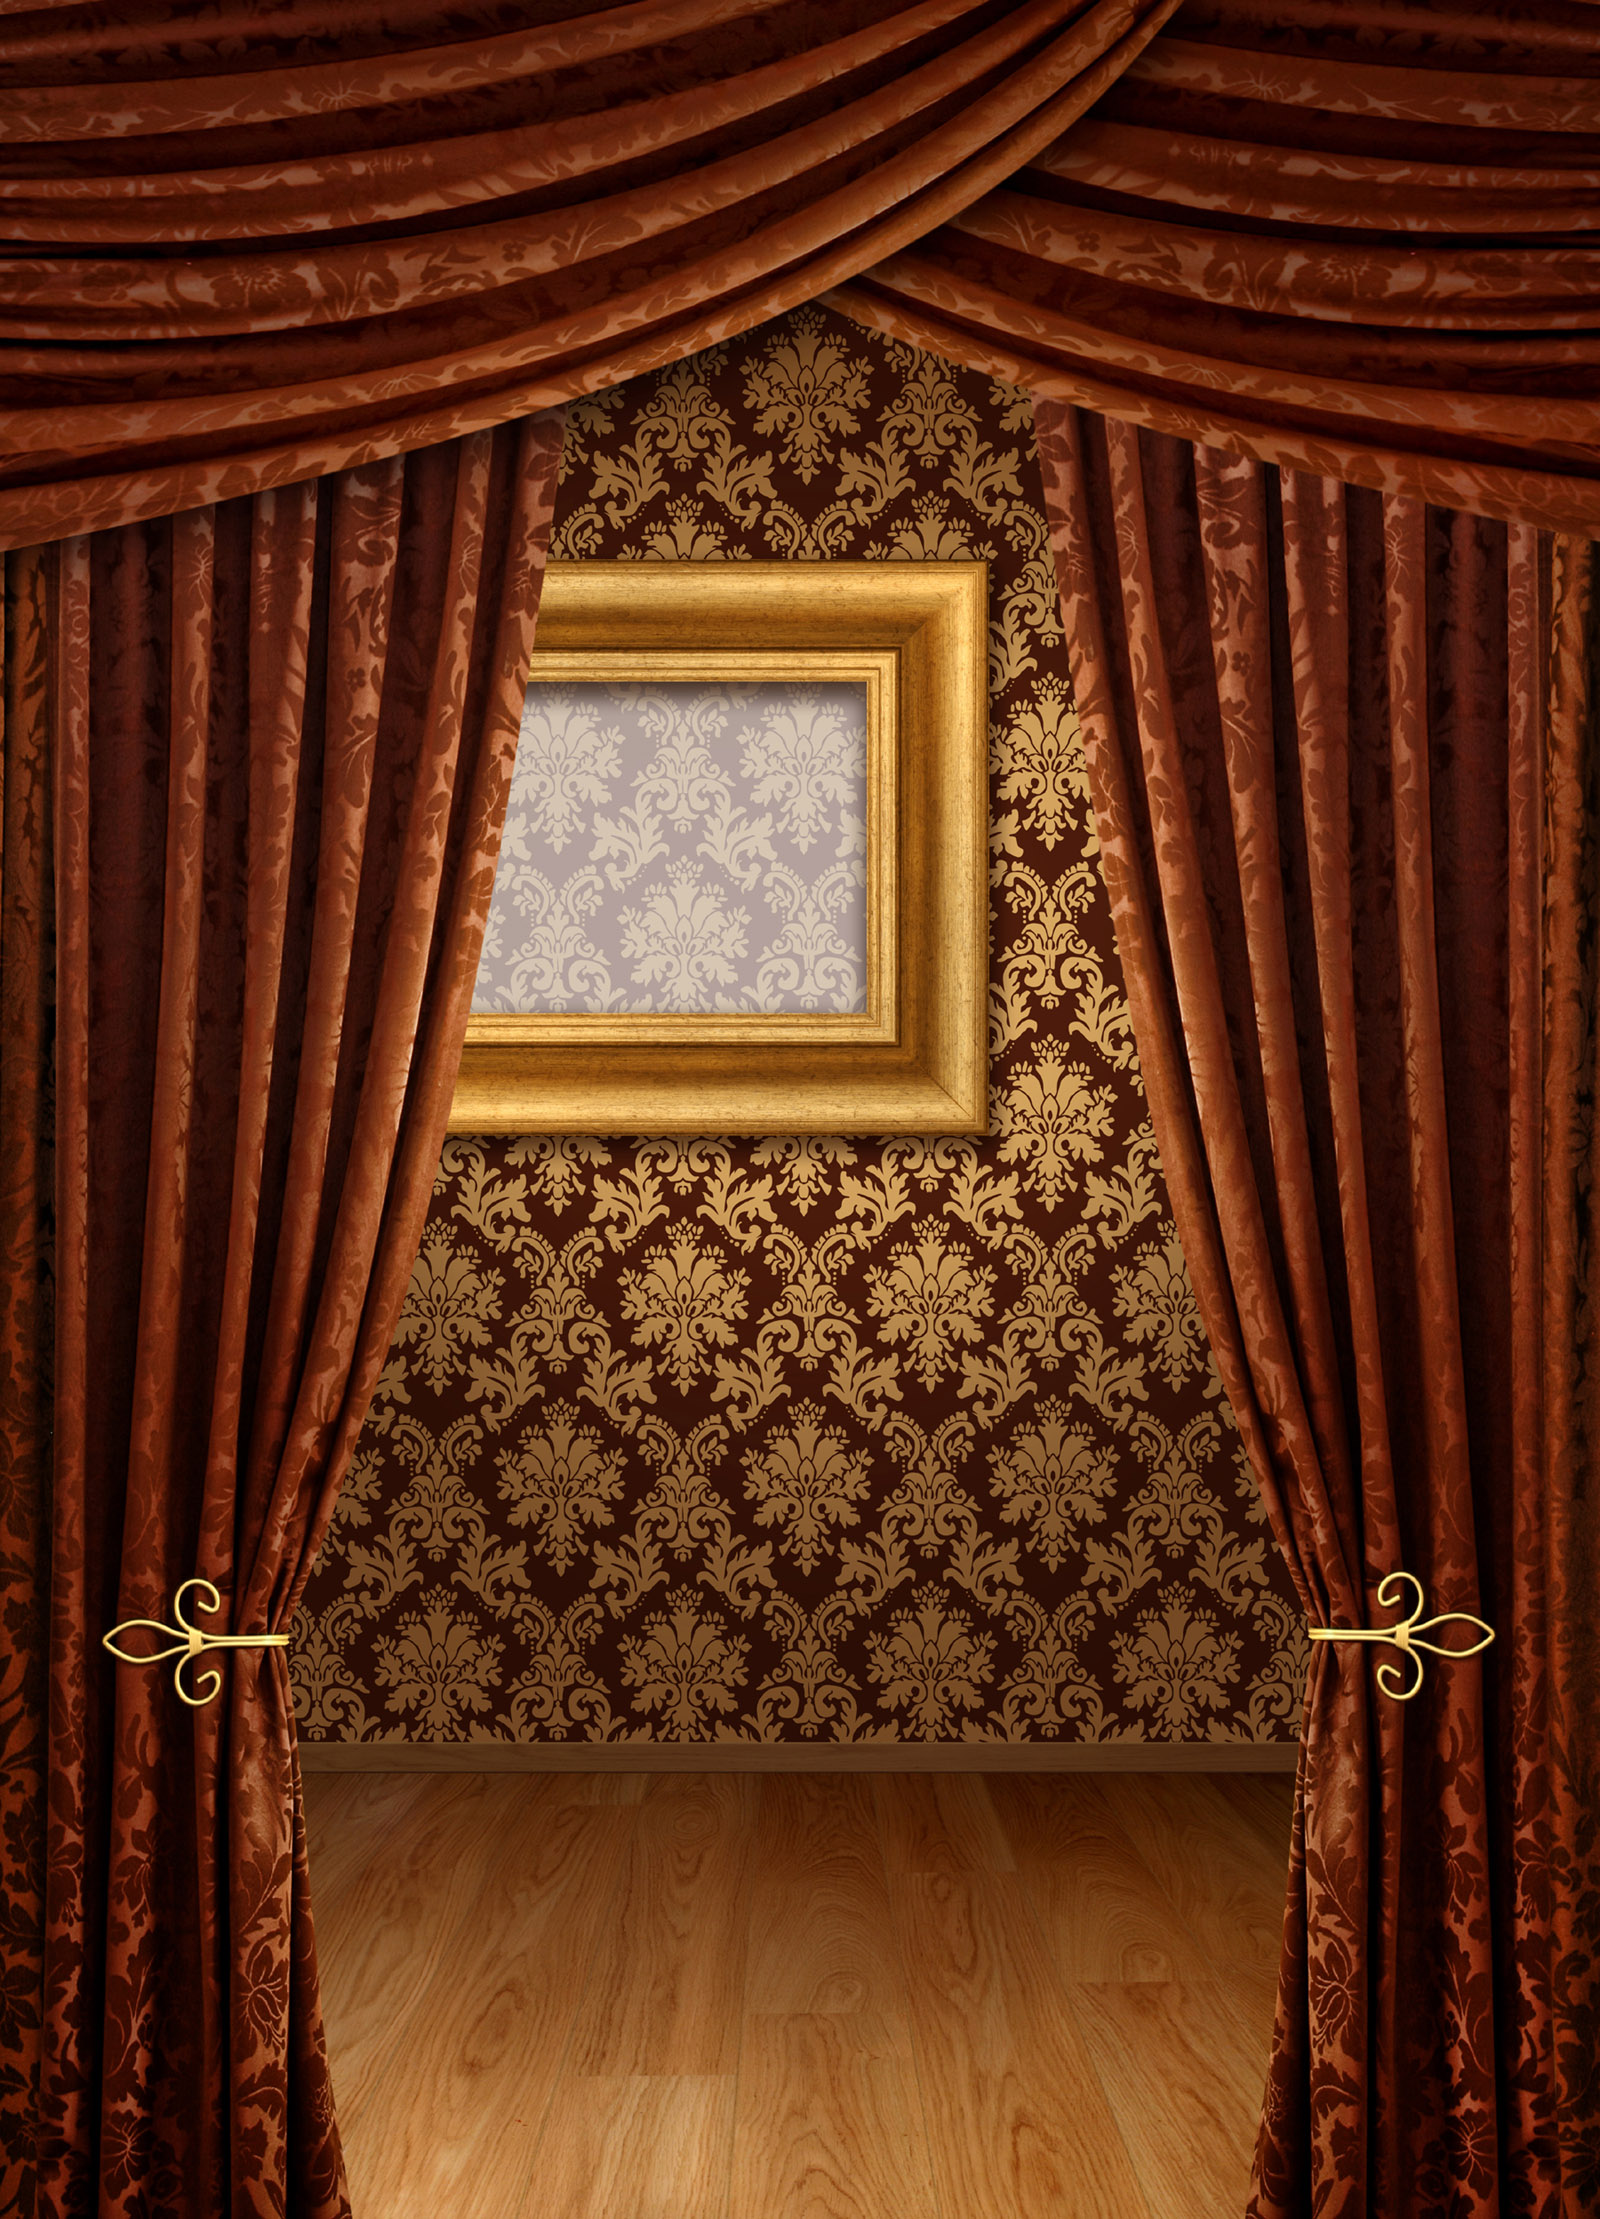 Brown curtain and wall background 27566